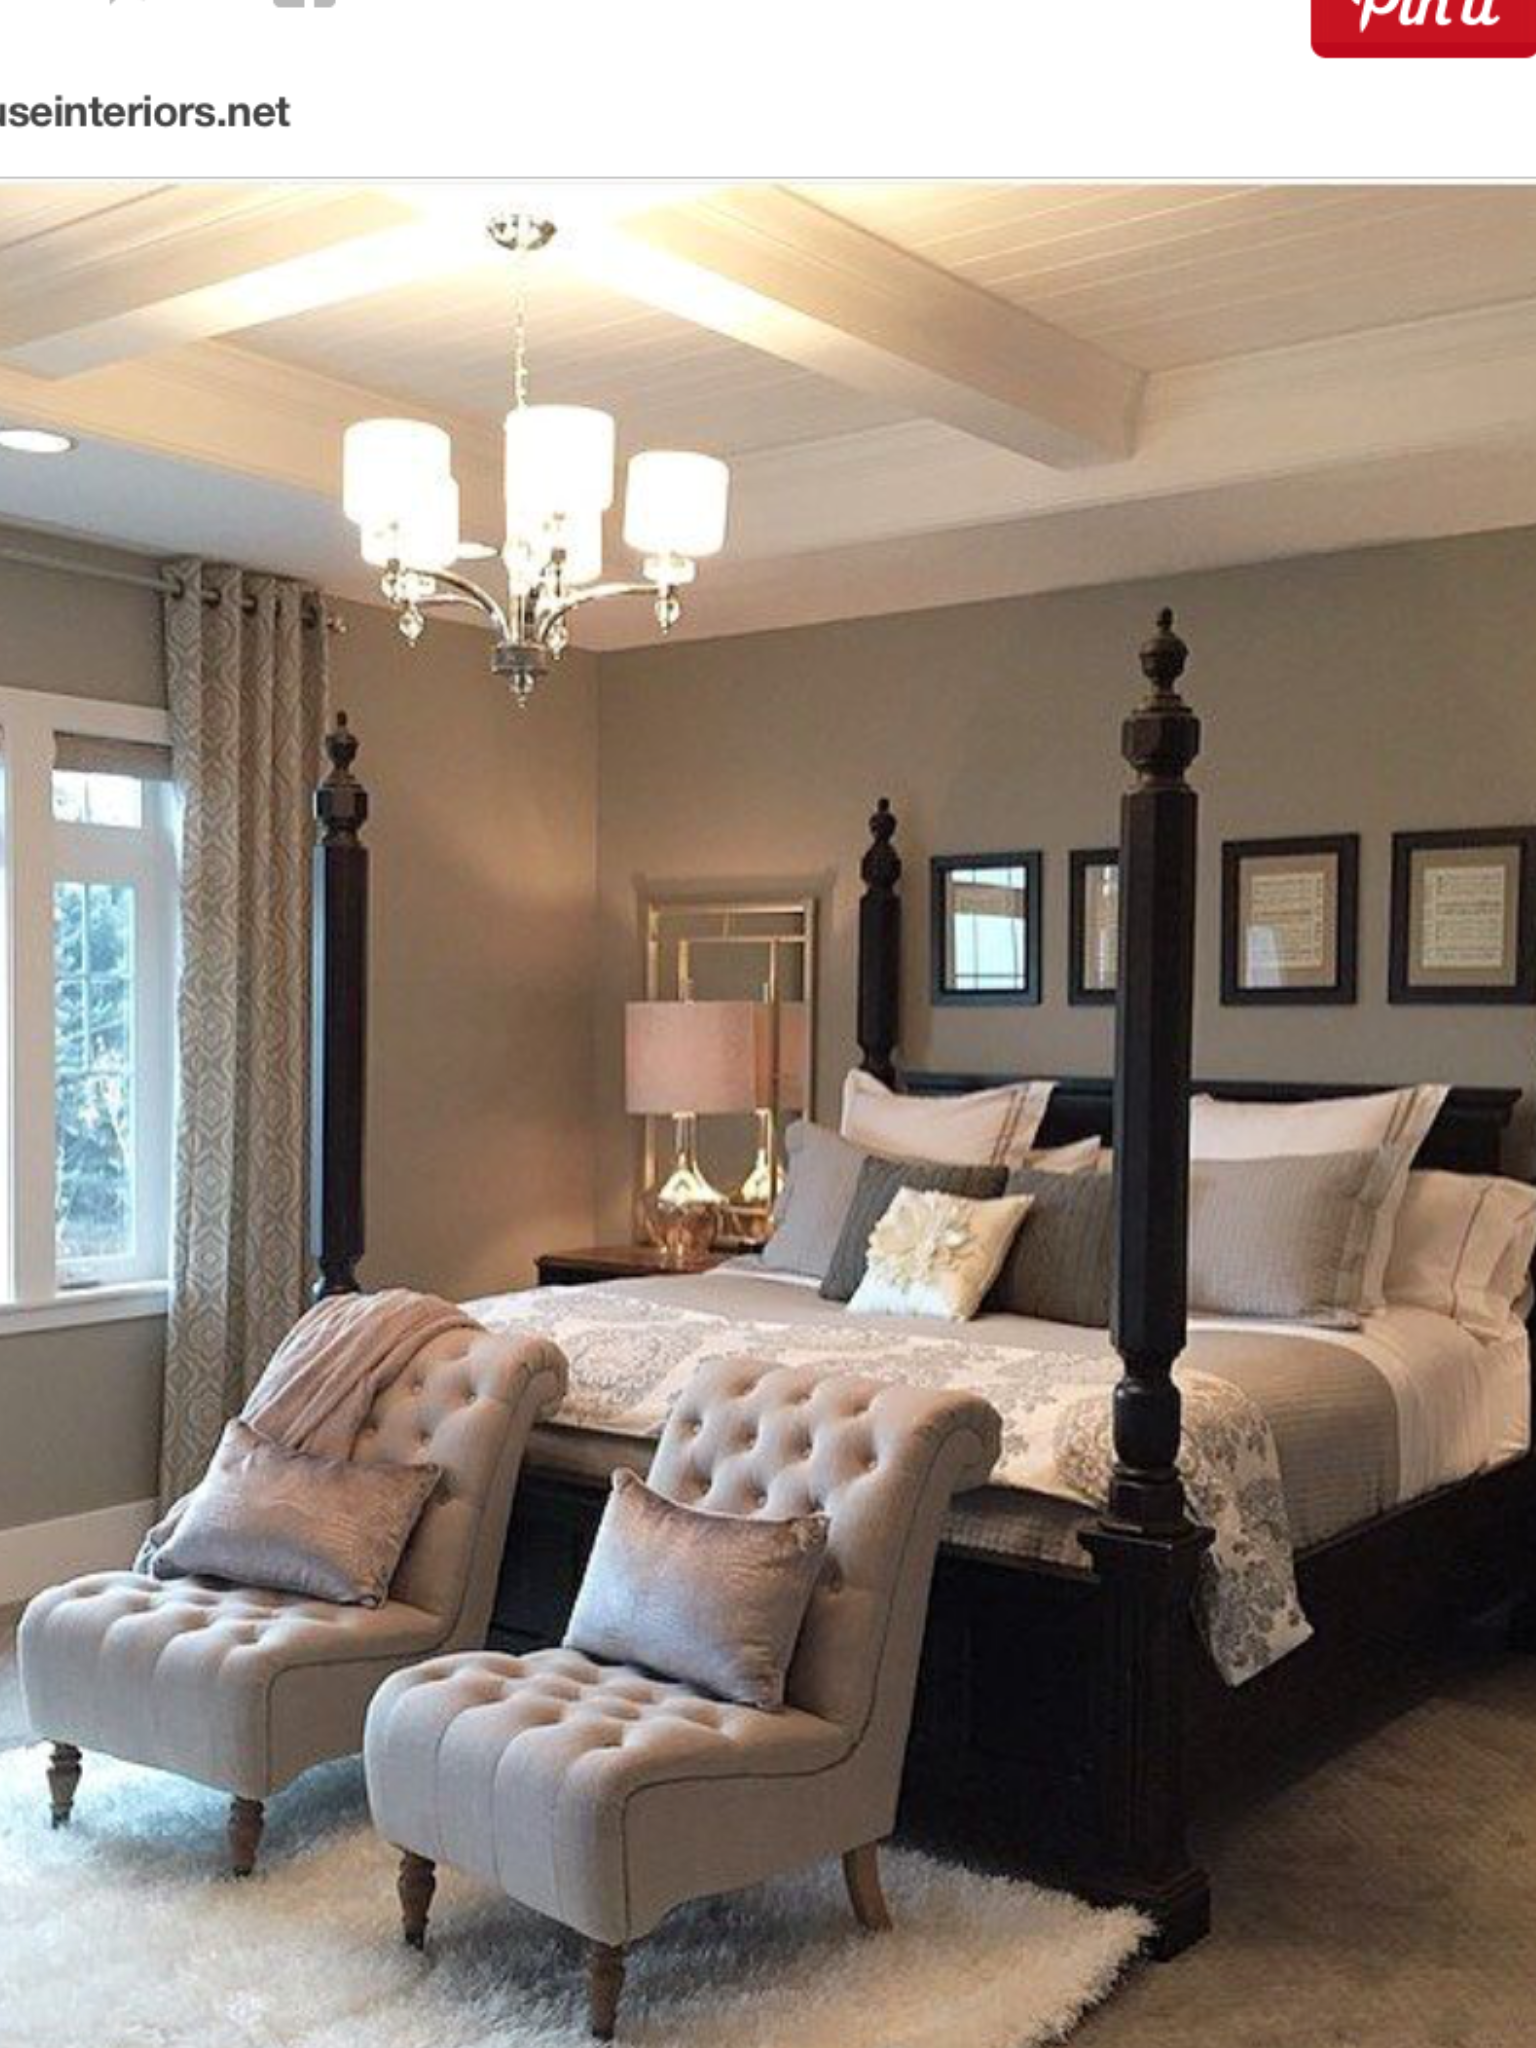 Unique 30 Black And Beige Bedroom Decor Decorating Design